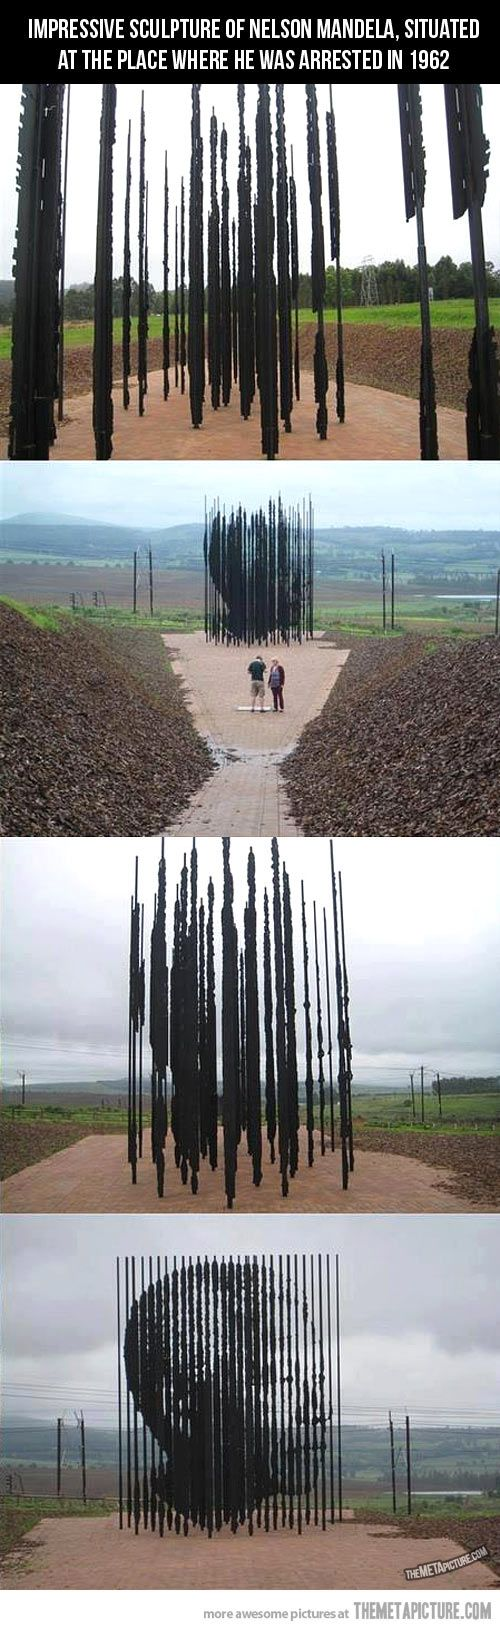 This stunning piece of artwork erected by South African artist Marco Cianfanelli, stands on the spot where Nelson Mandela was arrested 50 years ago. The monument is constructed out of 50 separate steel bars to represent 50 years since the capture.